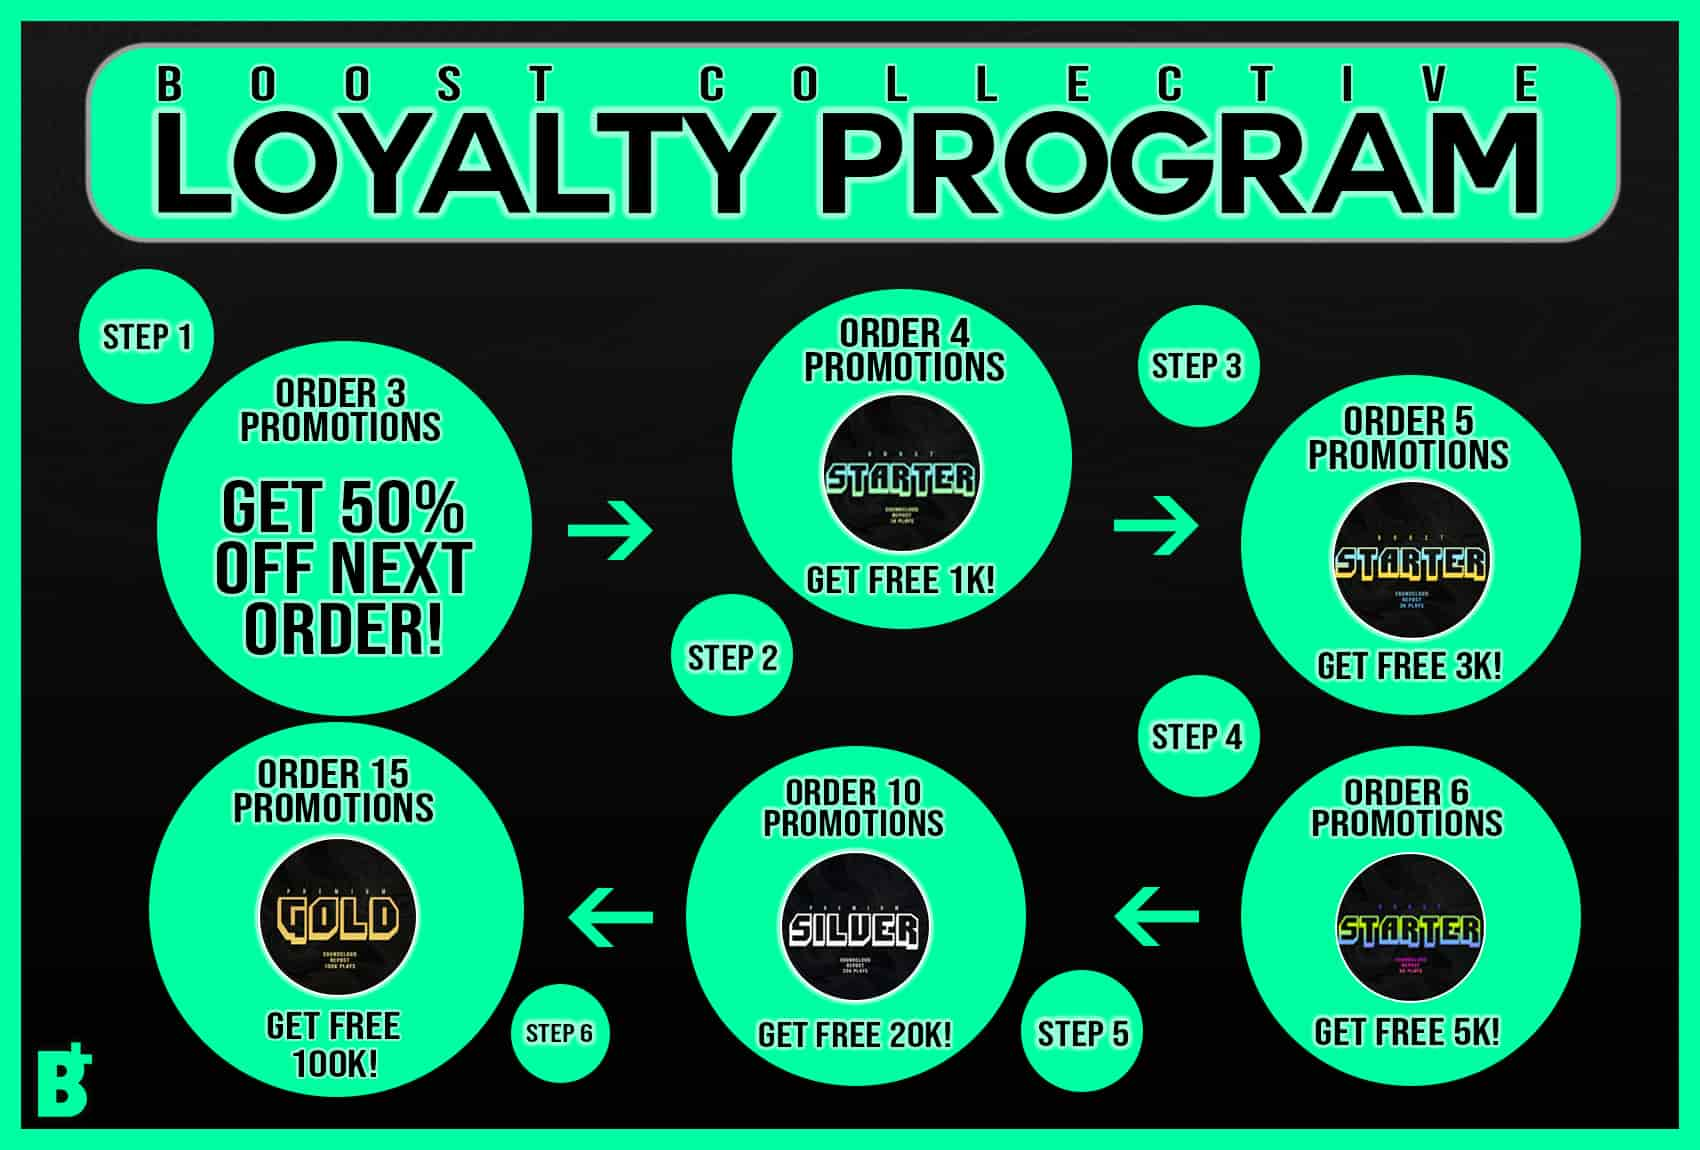 Loyalty Program-min.jpg